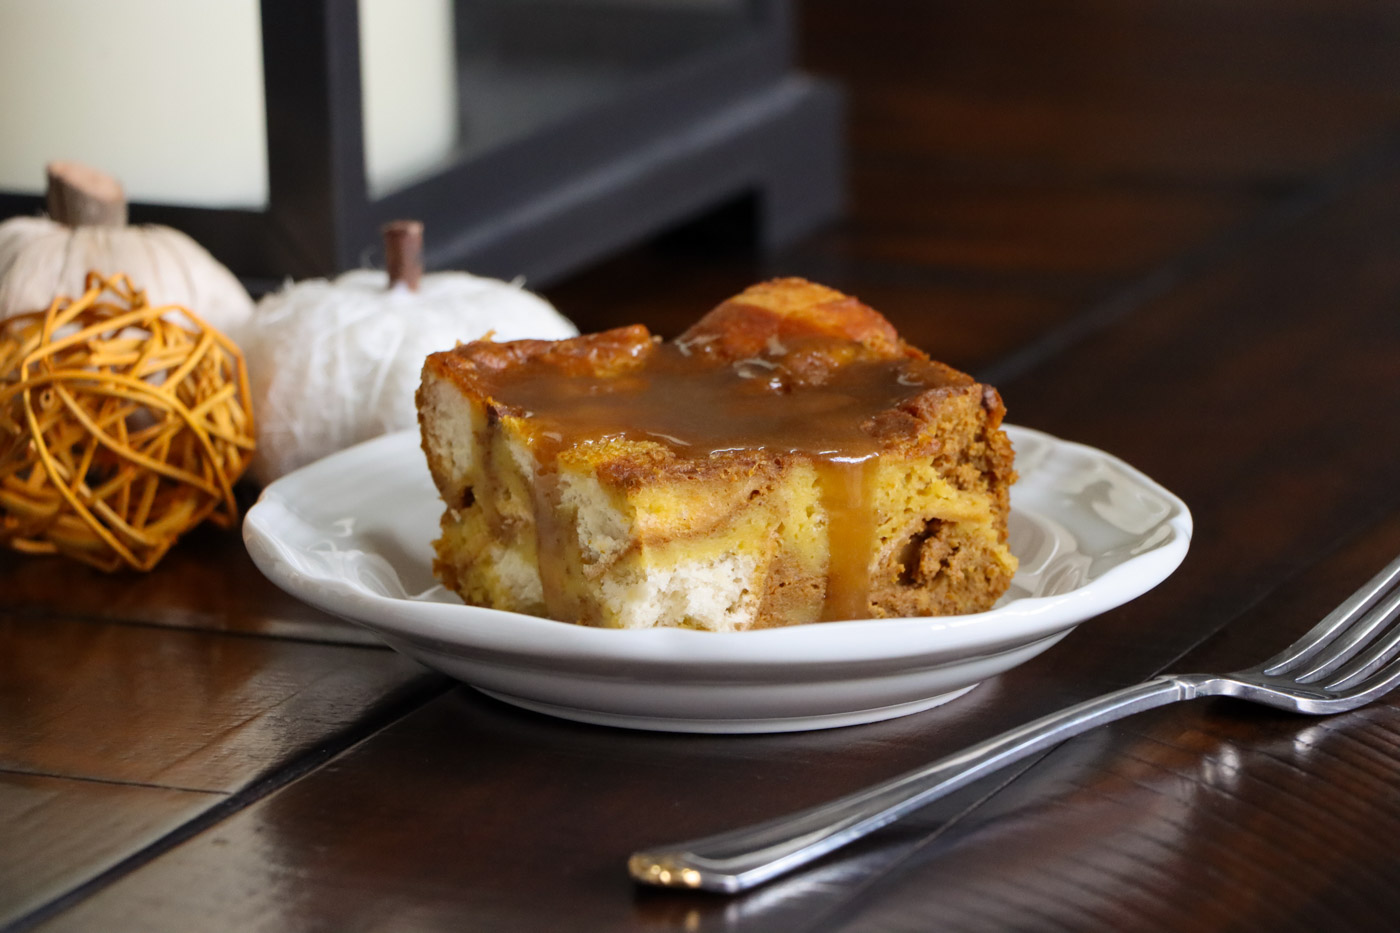 A piece of pumpkin bread pudding with brown sugar sauce over the top.